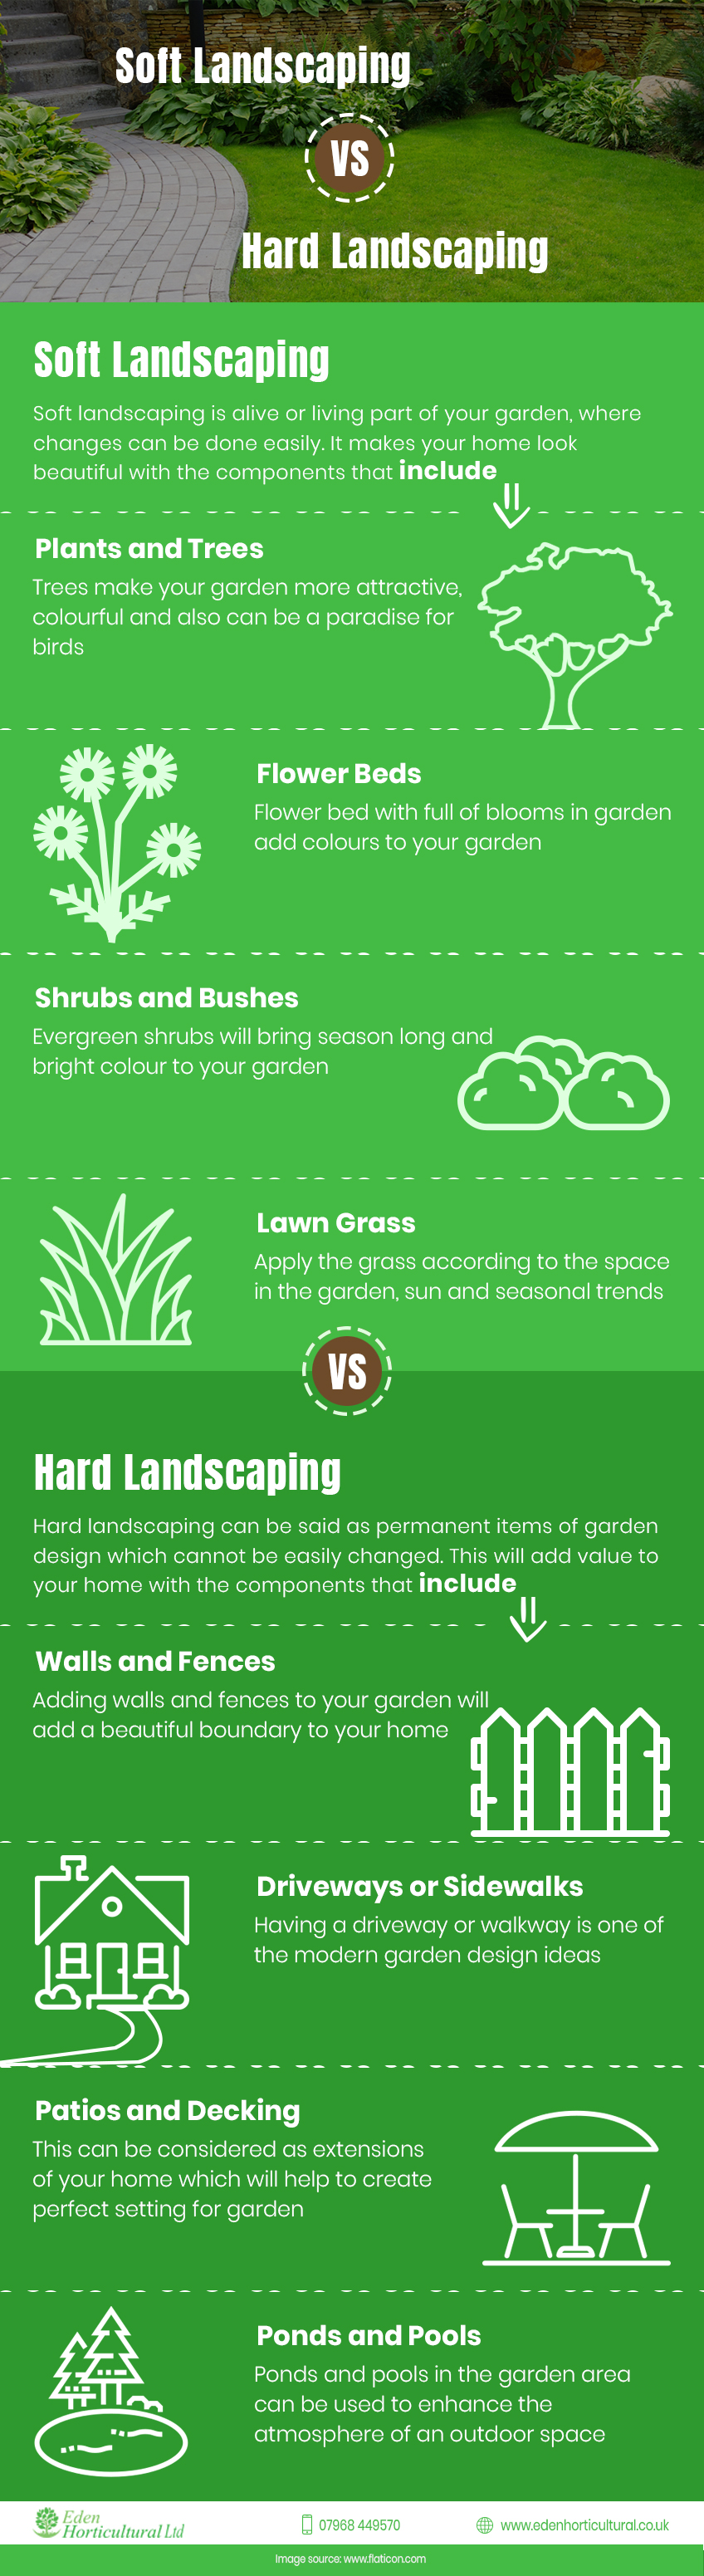 Softs-landscaping-vs-hard-landscaping